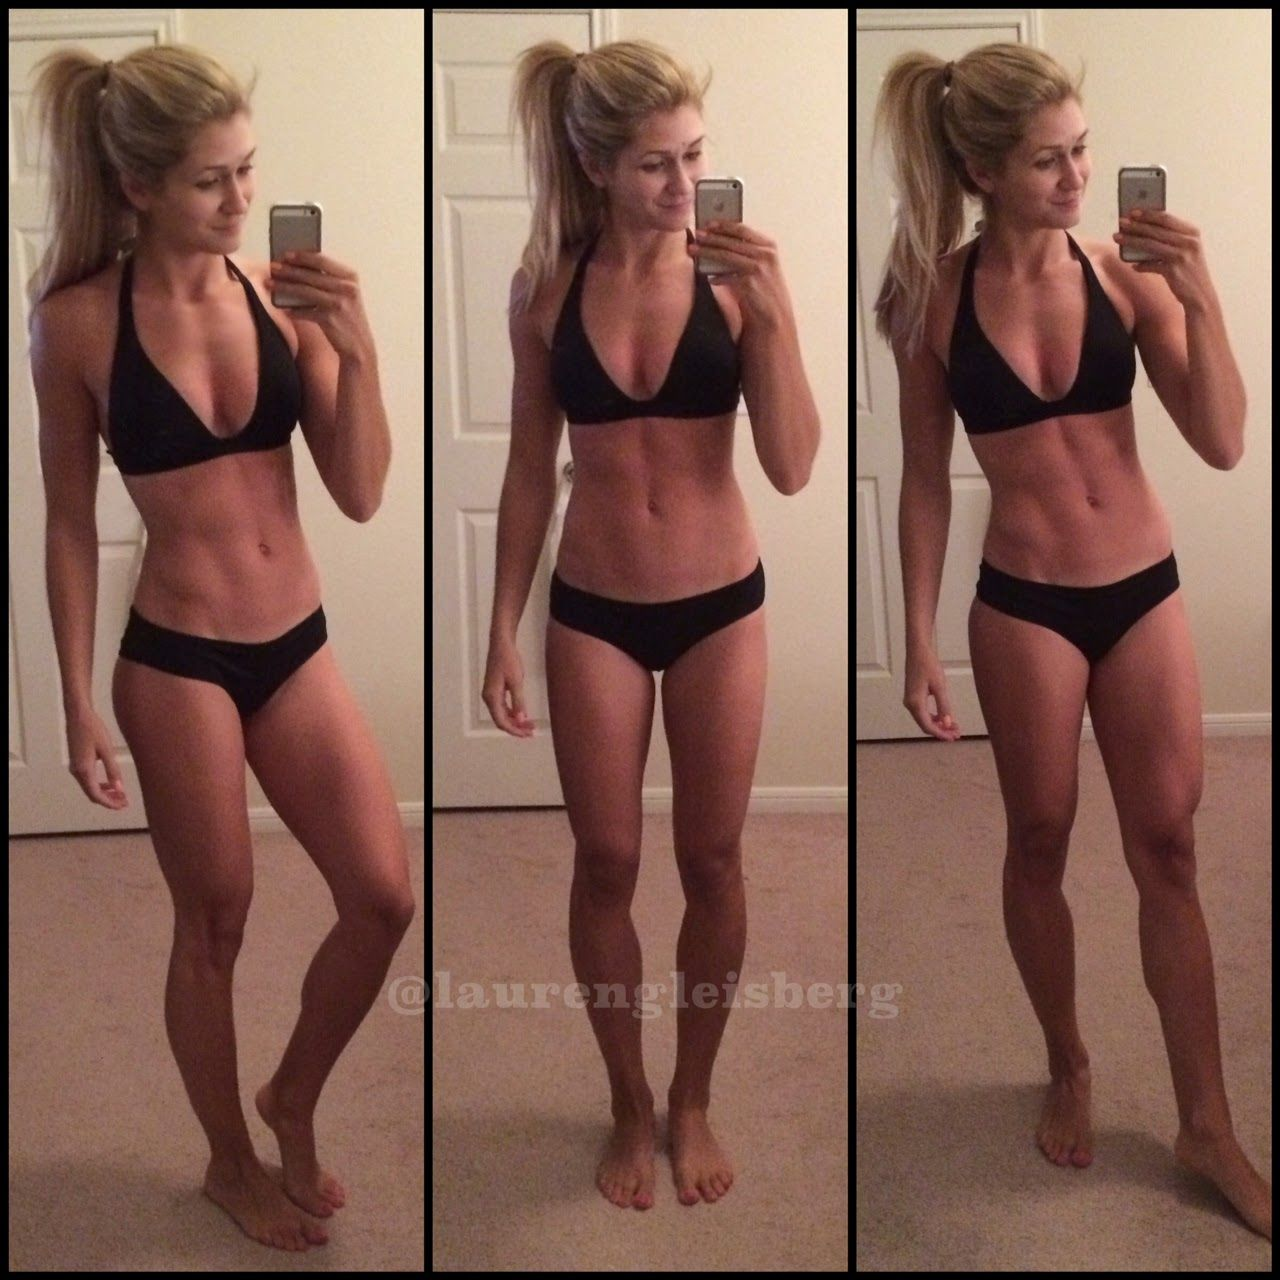 Week of fat loss workout plan for women - meals and workouts for ...